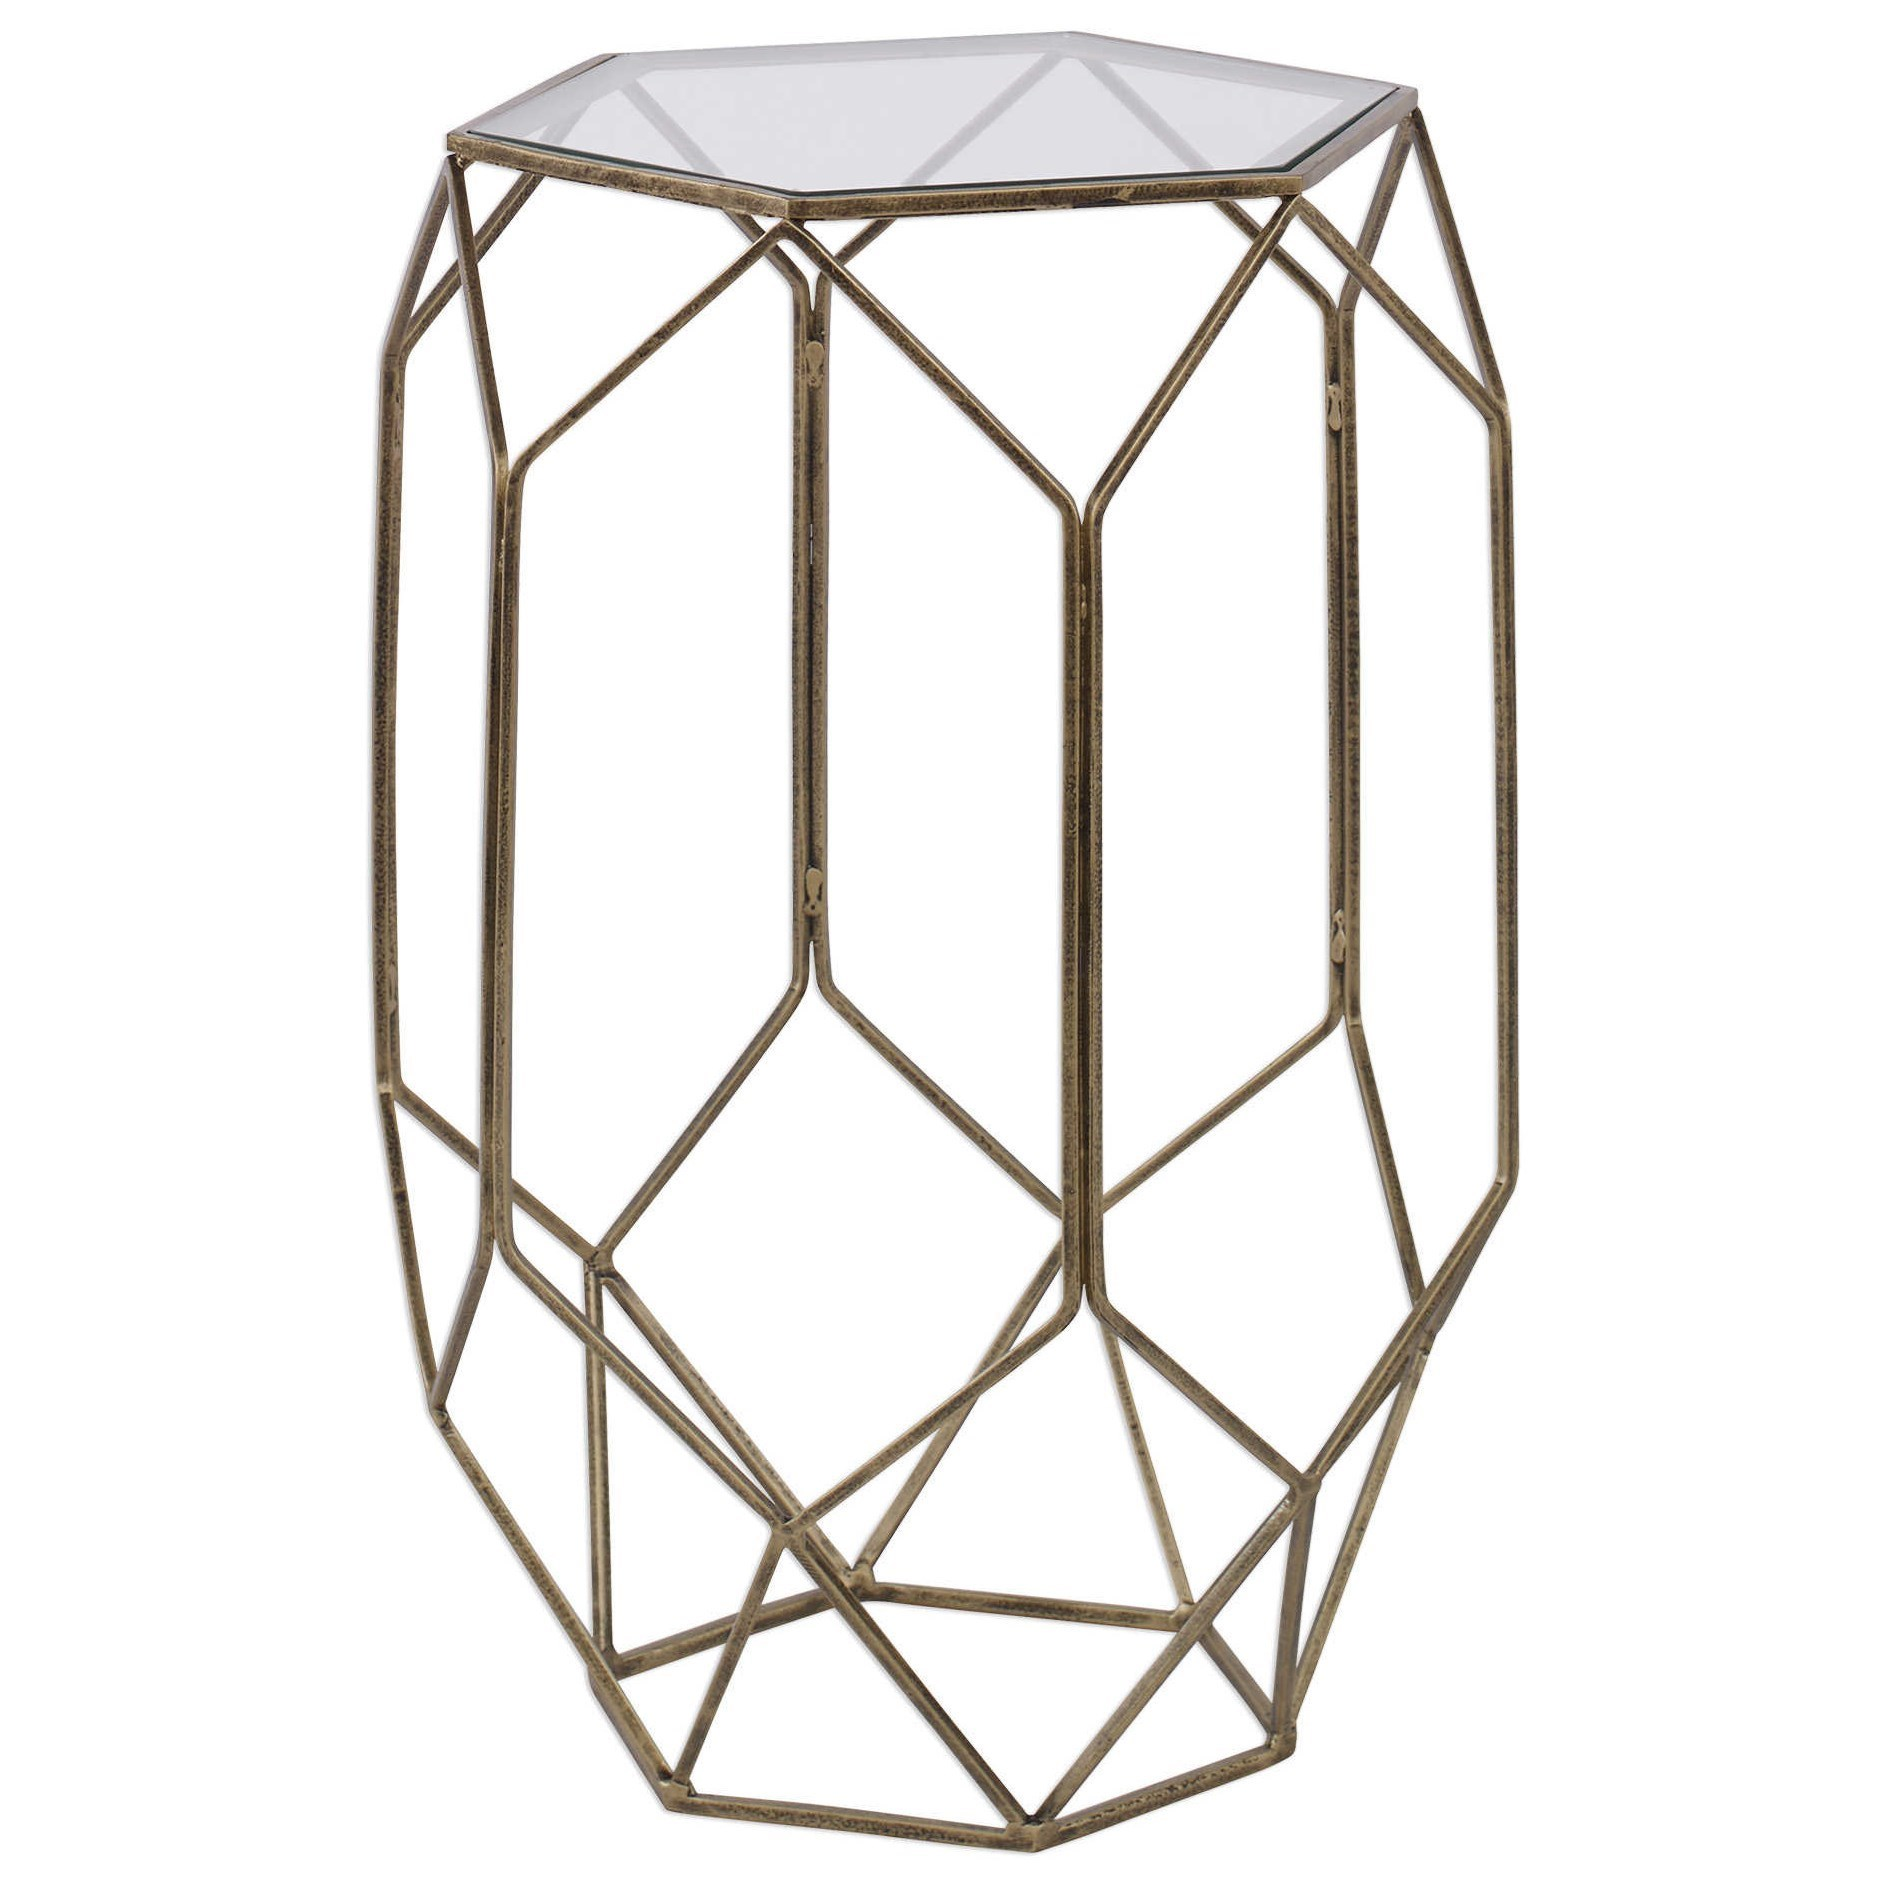 Accent Furniture - Occasional Tables Sanders Contemporary Accent Table by Uttermost at Upper Room Home Furnishings